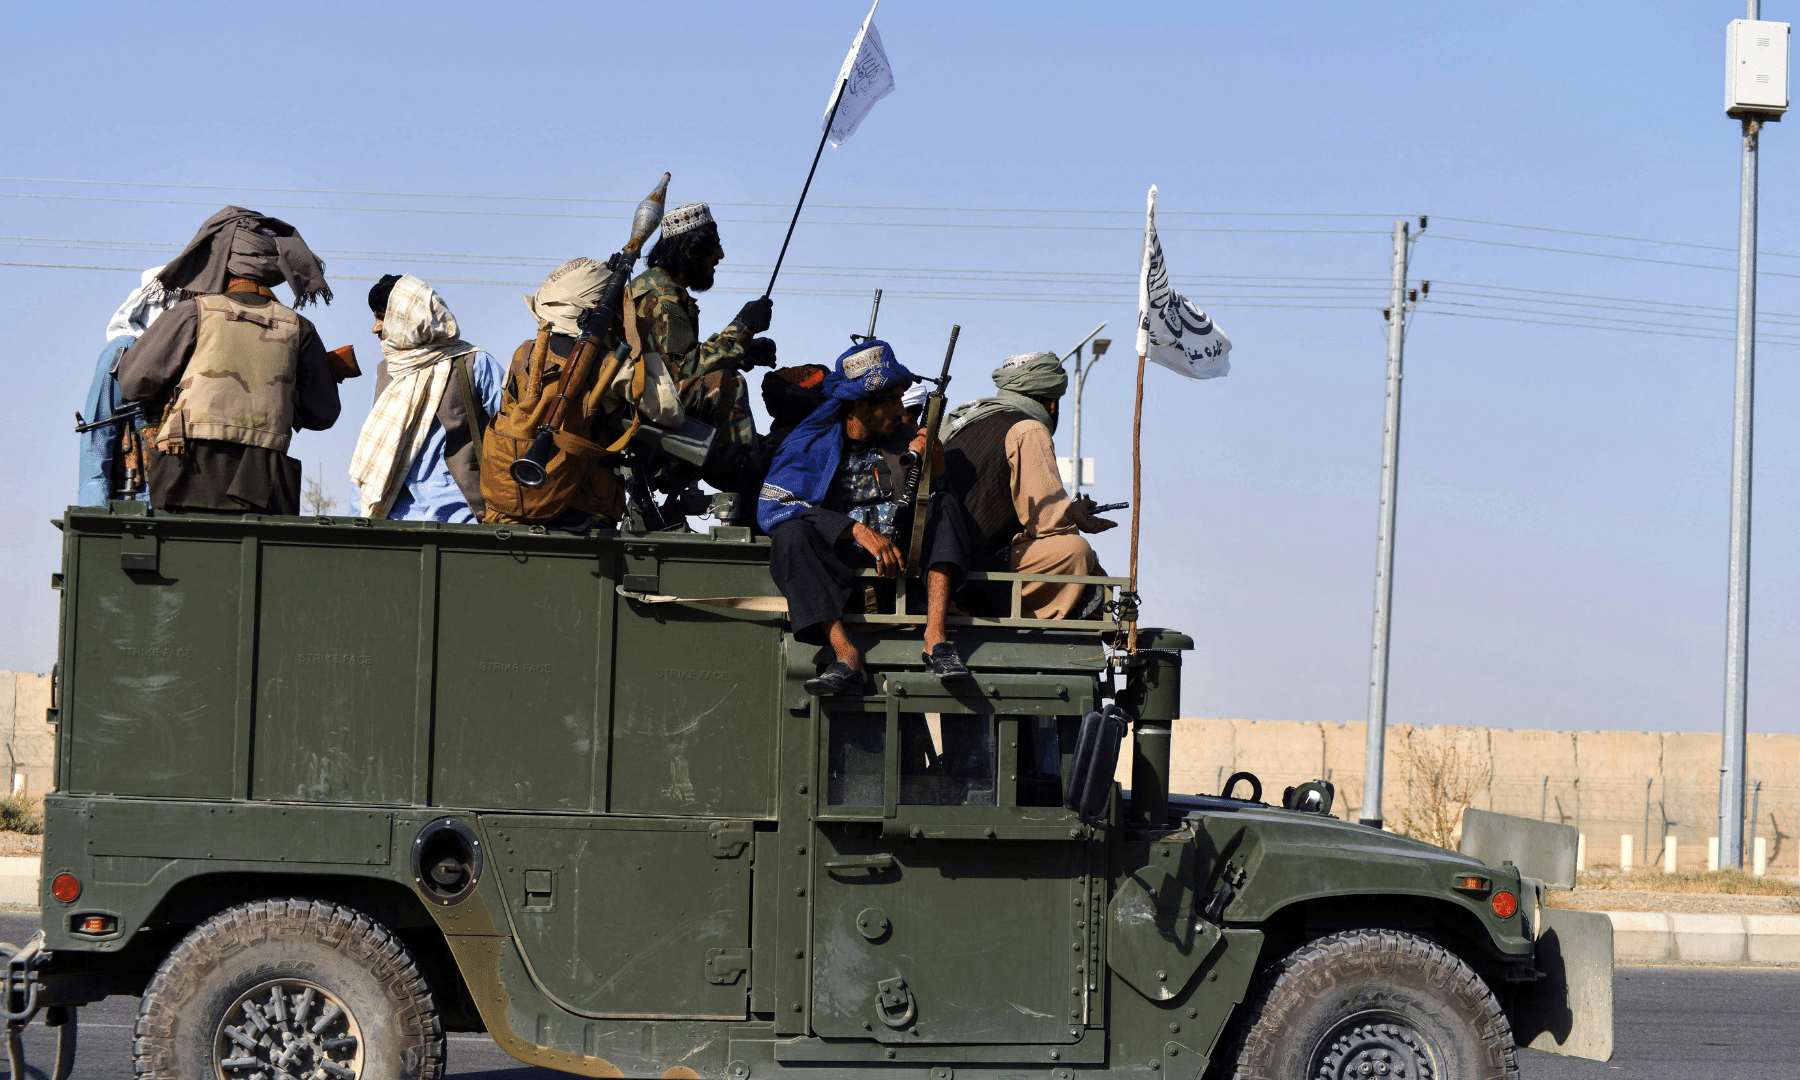 Taliban fighters stand on an armoured vehicle before parading along a road.